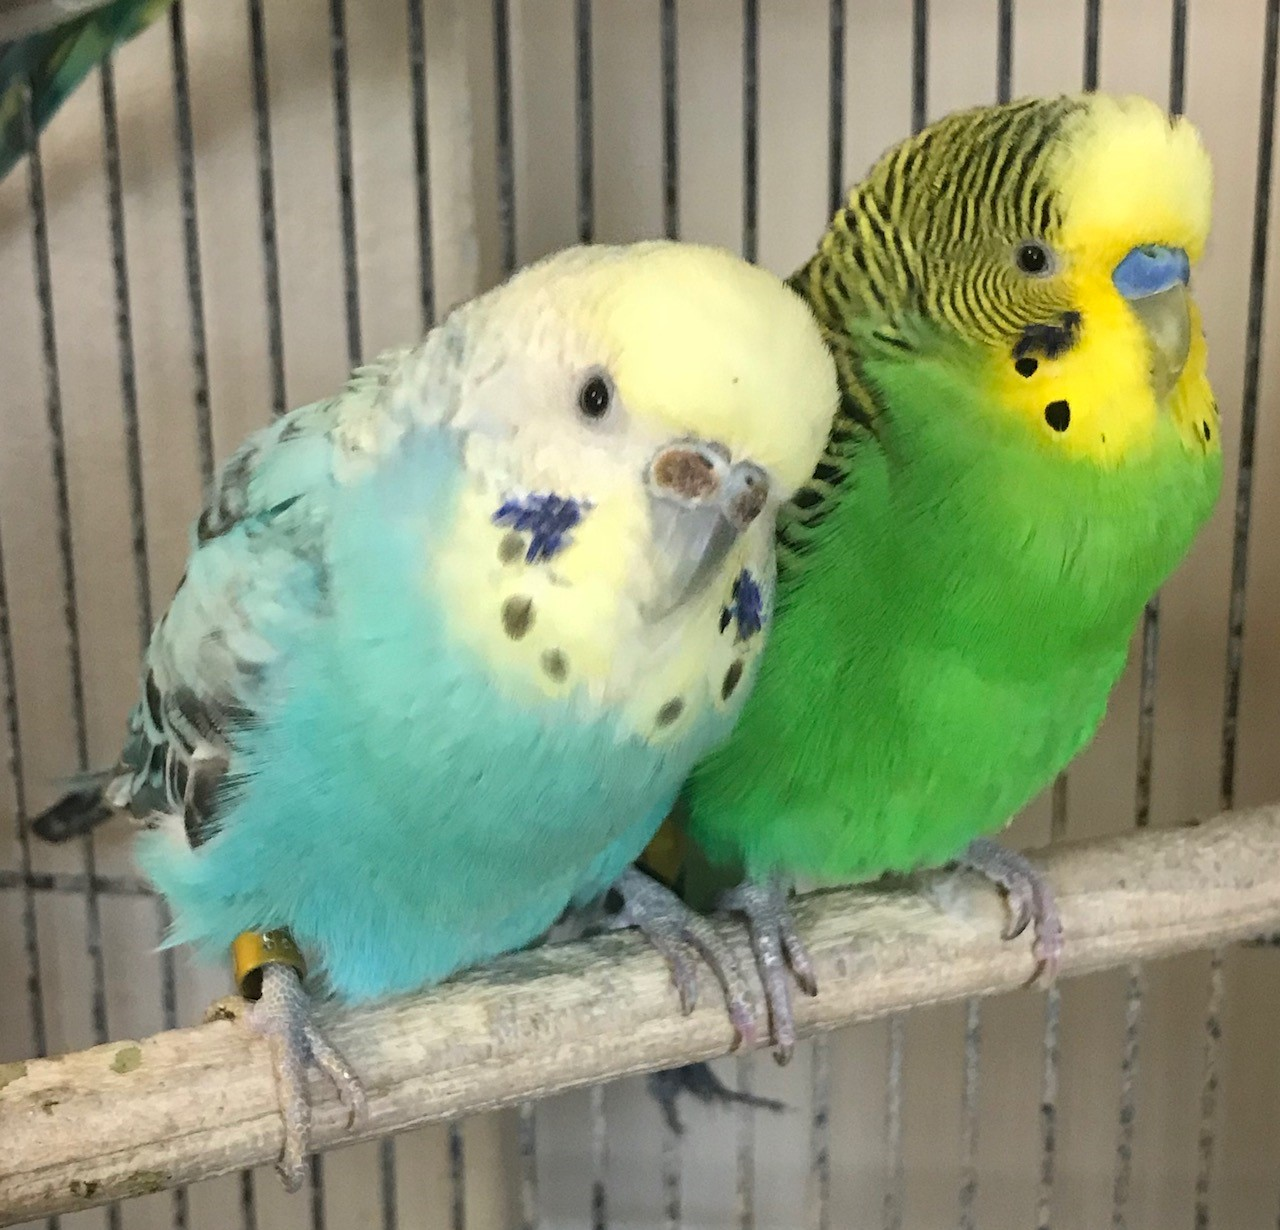 ADOPT — Connecticut Parrot Rescue